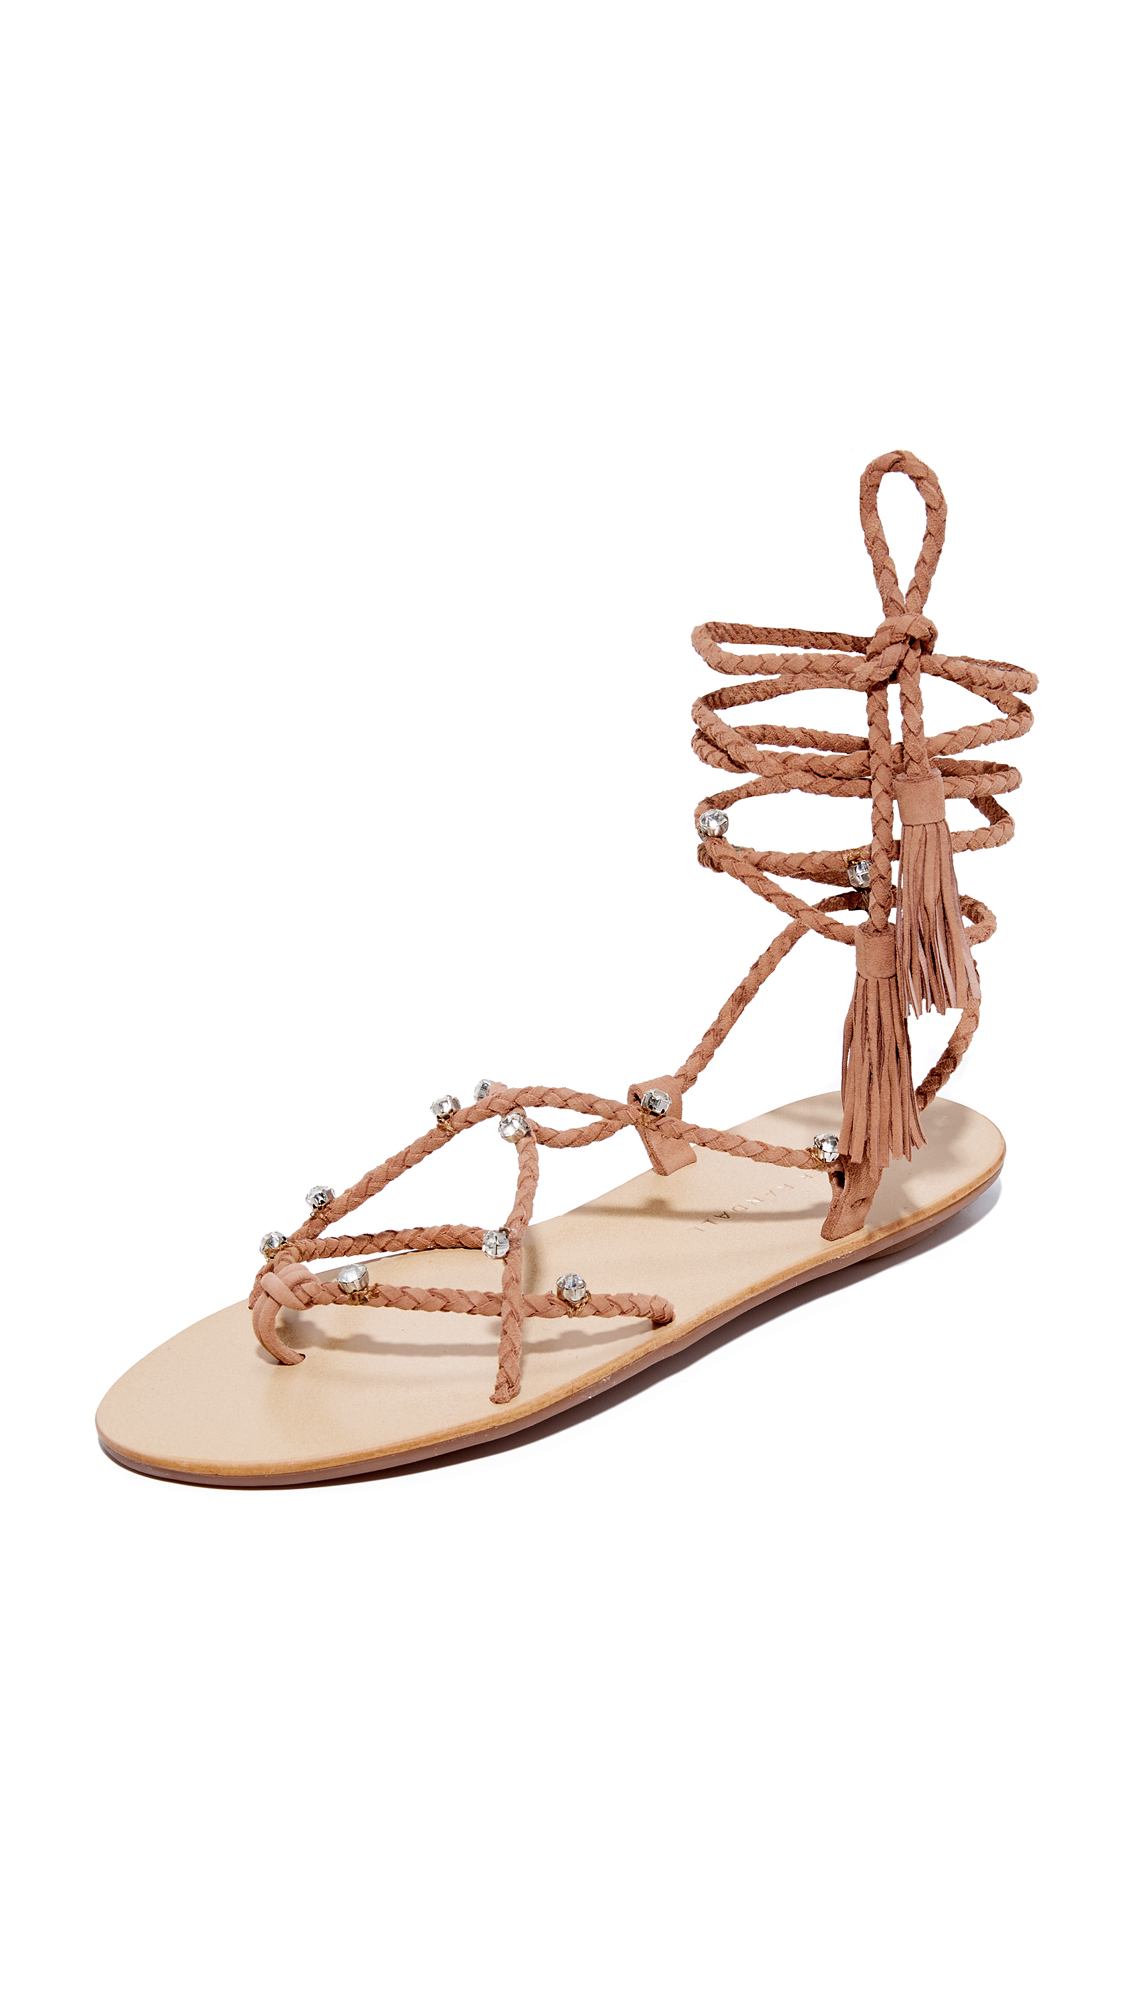 Loeffler Randall Bo Wrap Sandals - Deep Blush